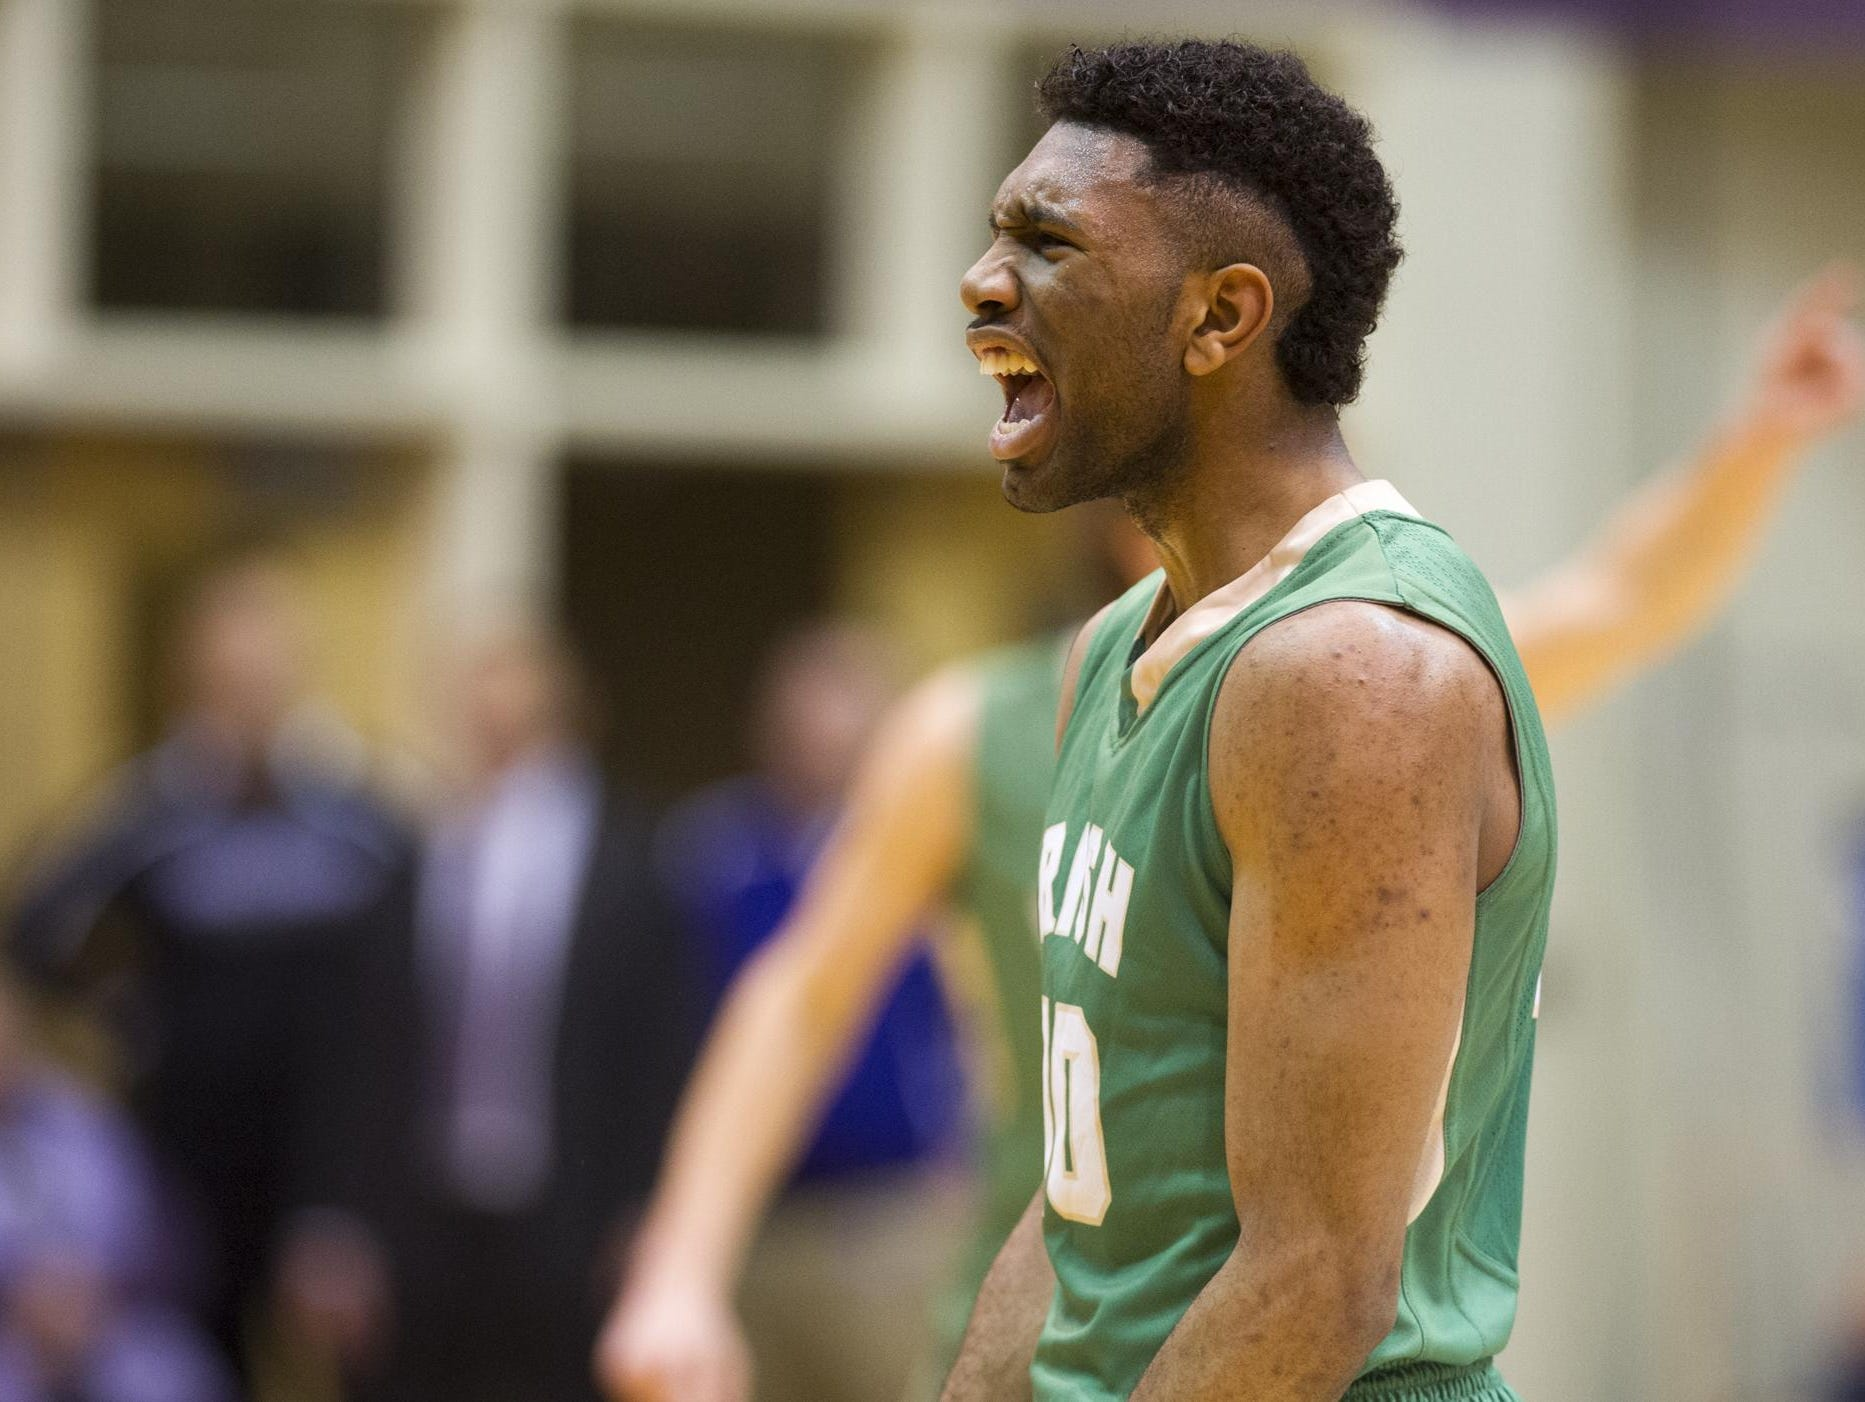 Cathedral's Eron Gordon, shown here in a game last year, scored a game-high 27 to lead the Irish past Howe on Friday night.